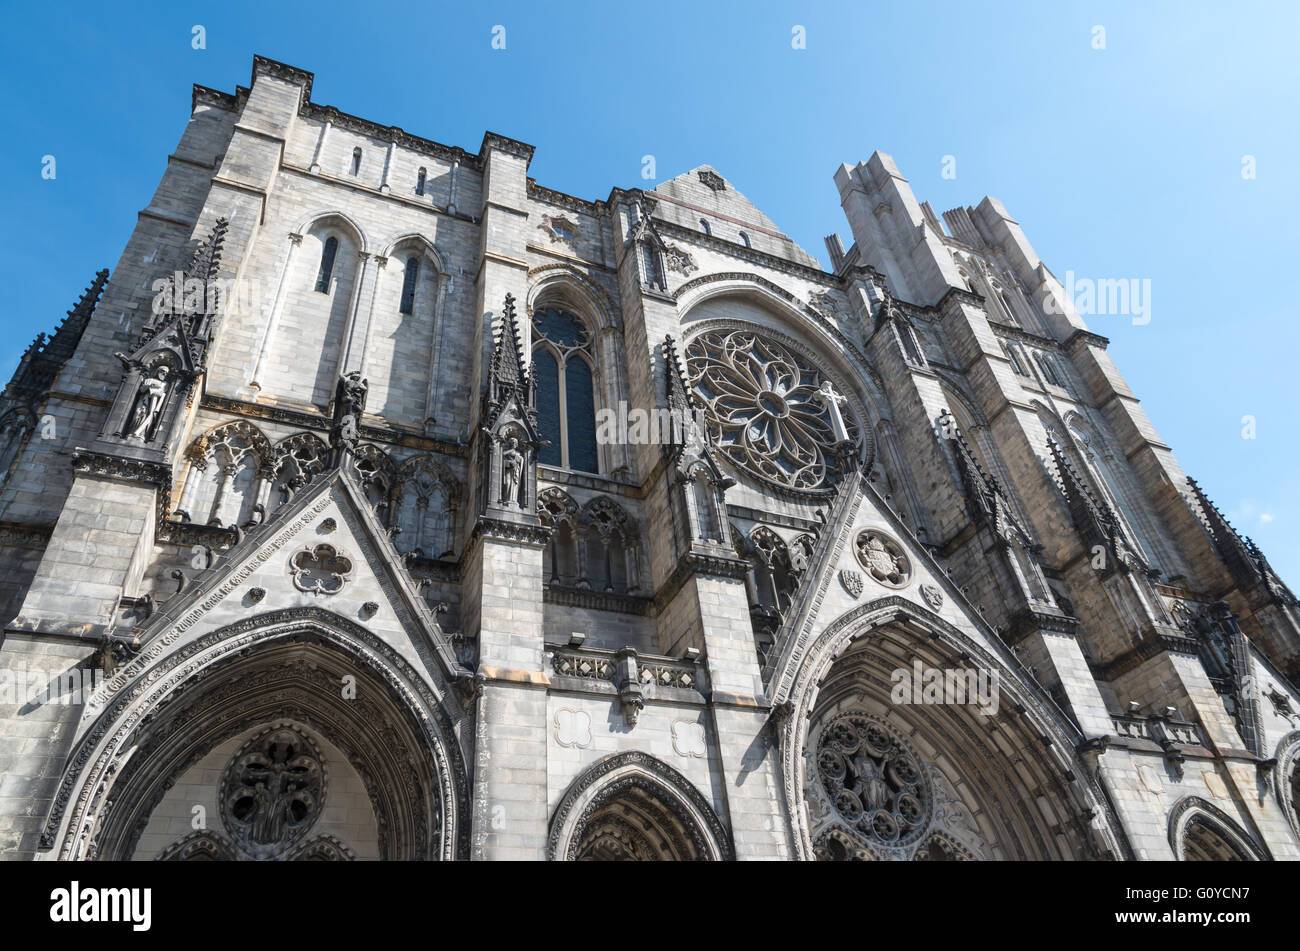 View of top of The Cathedral Church of St. John the Divine with rose window in New York - Stock Image